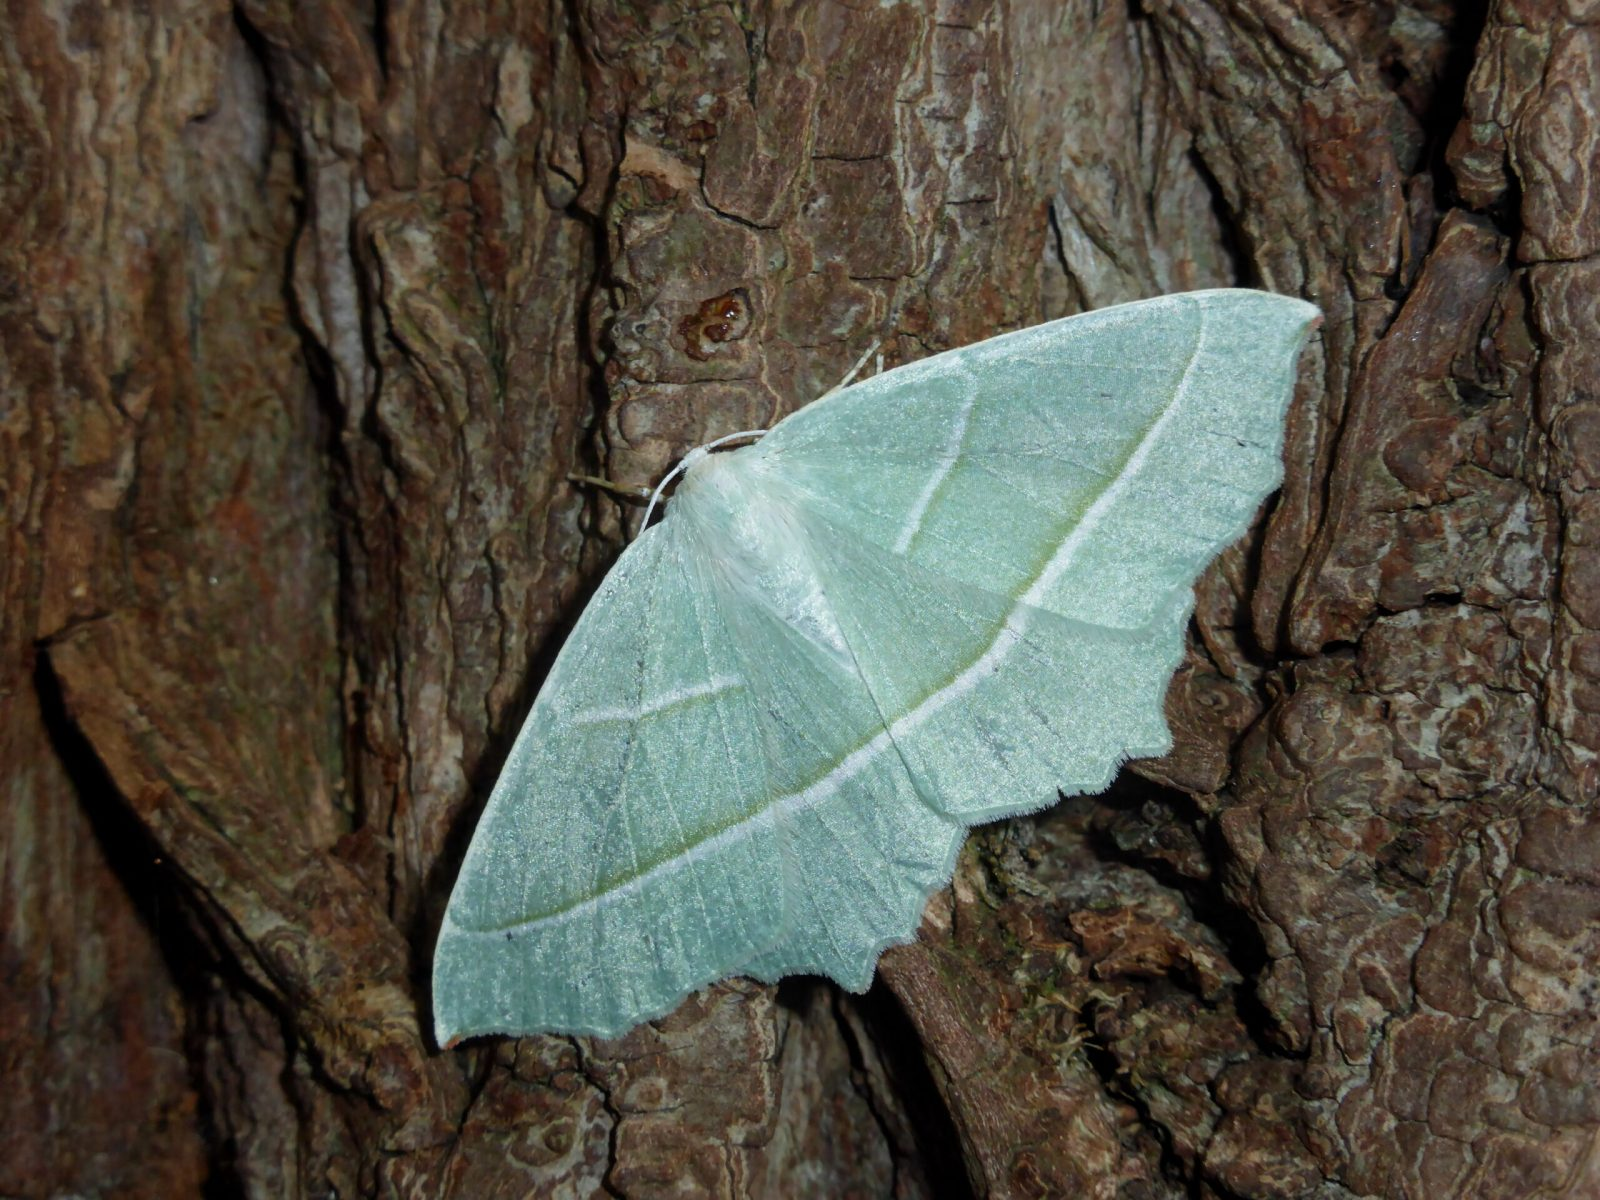 Campaea margaritata - Light Emerald - Kirk Smeaton